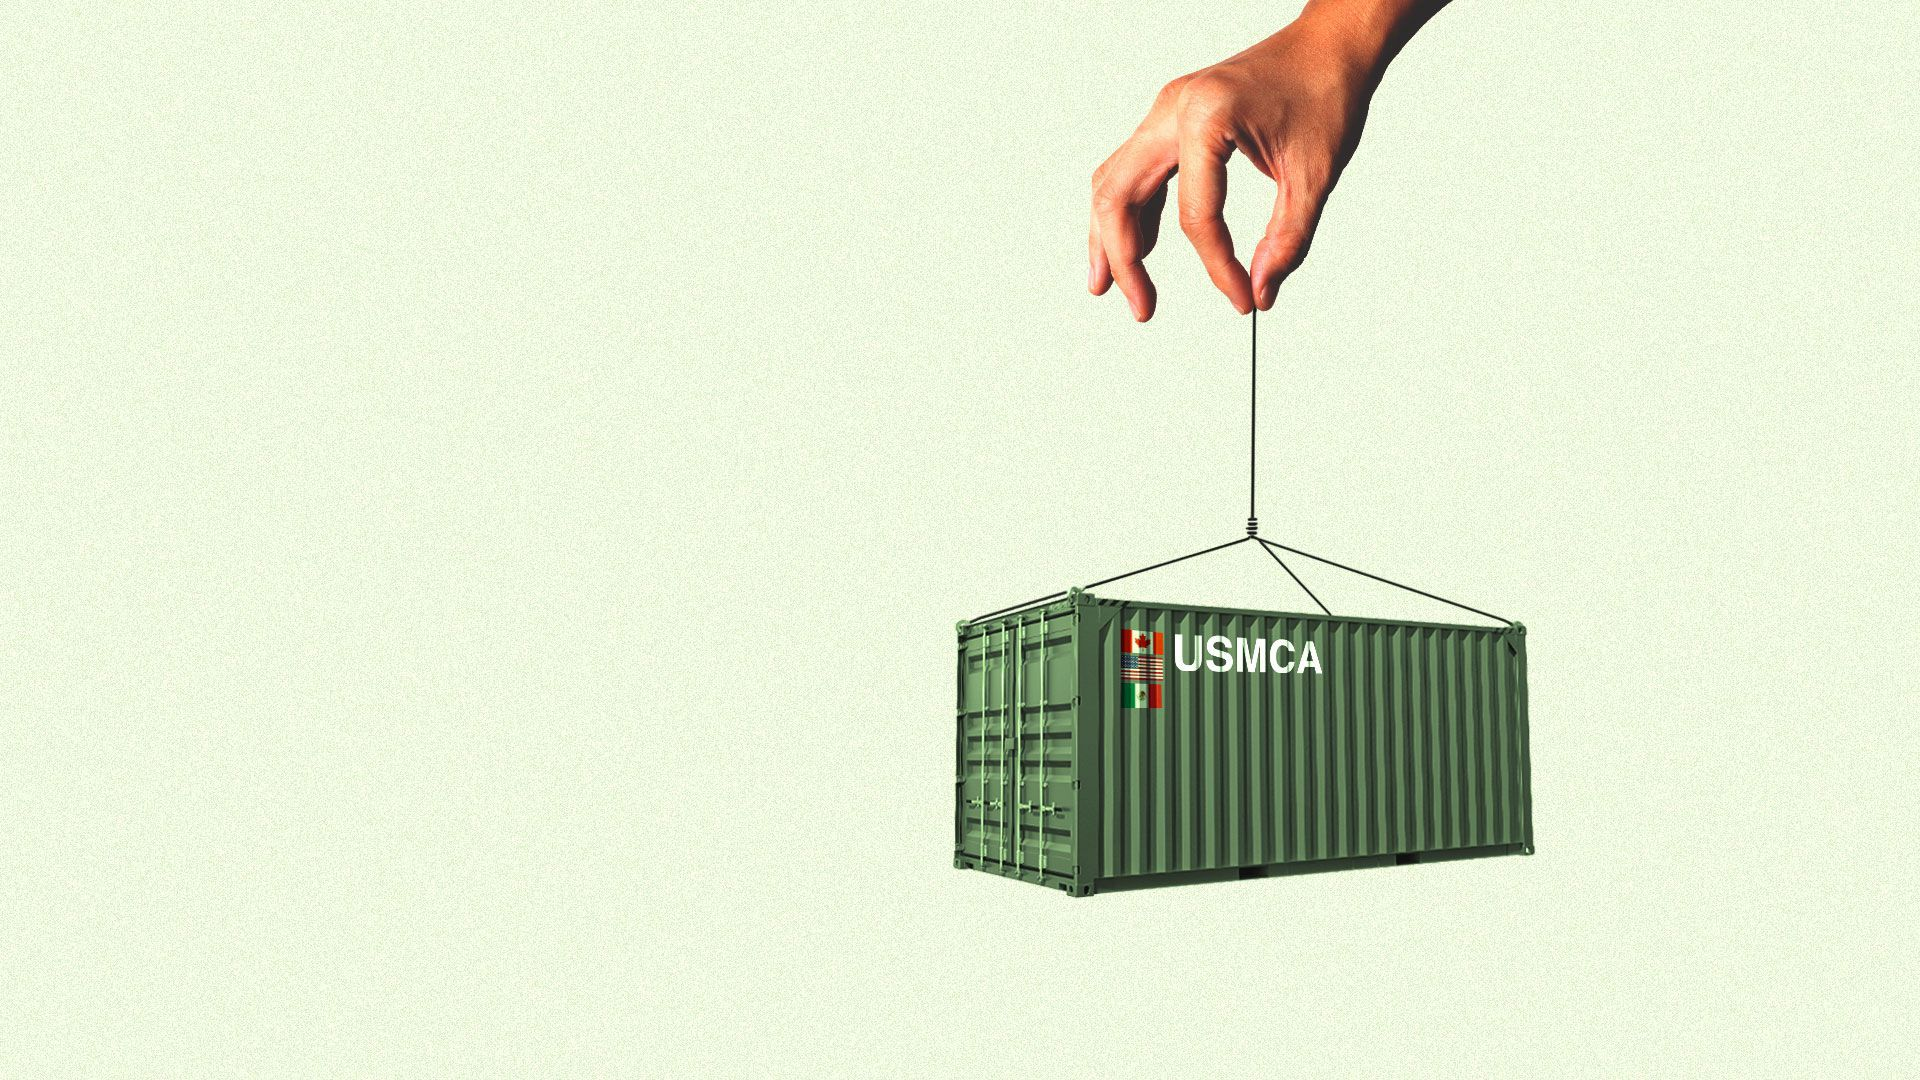 Illustration of a hand picking up a shipping container with USMCA label